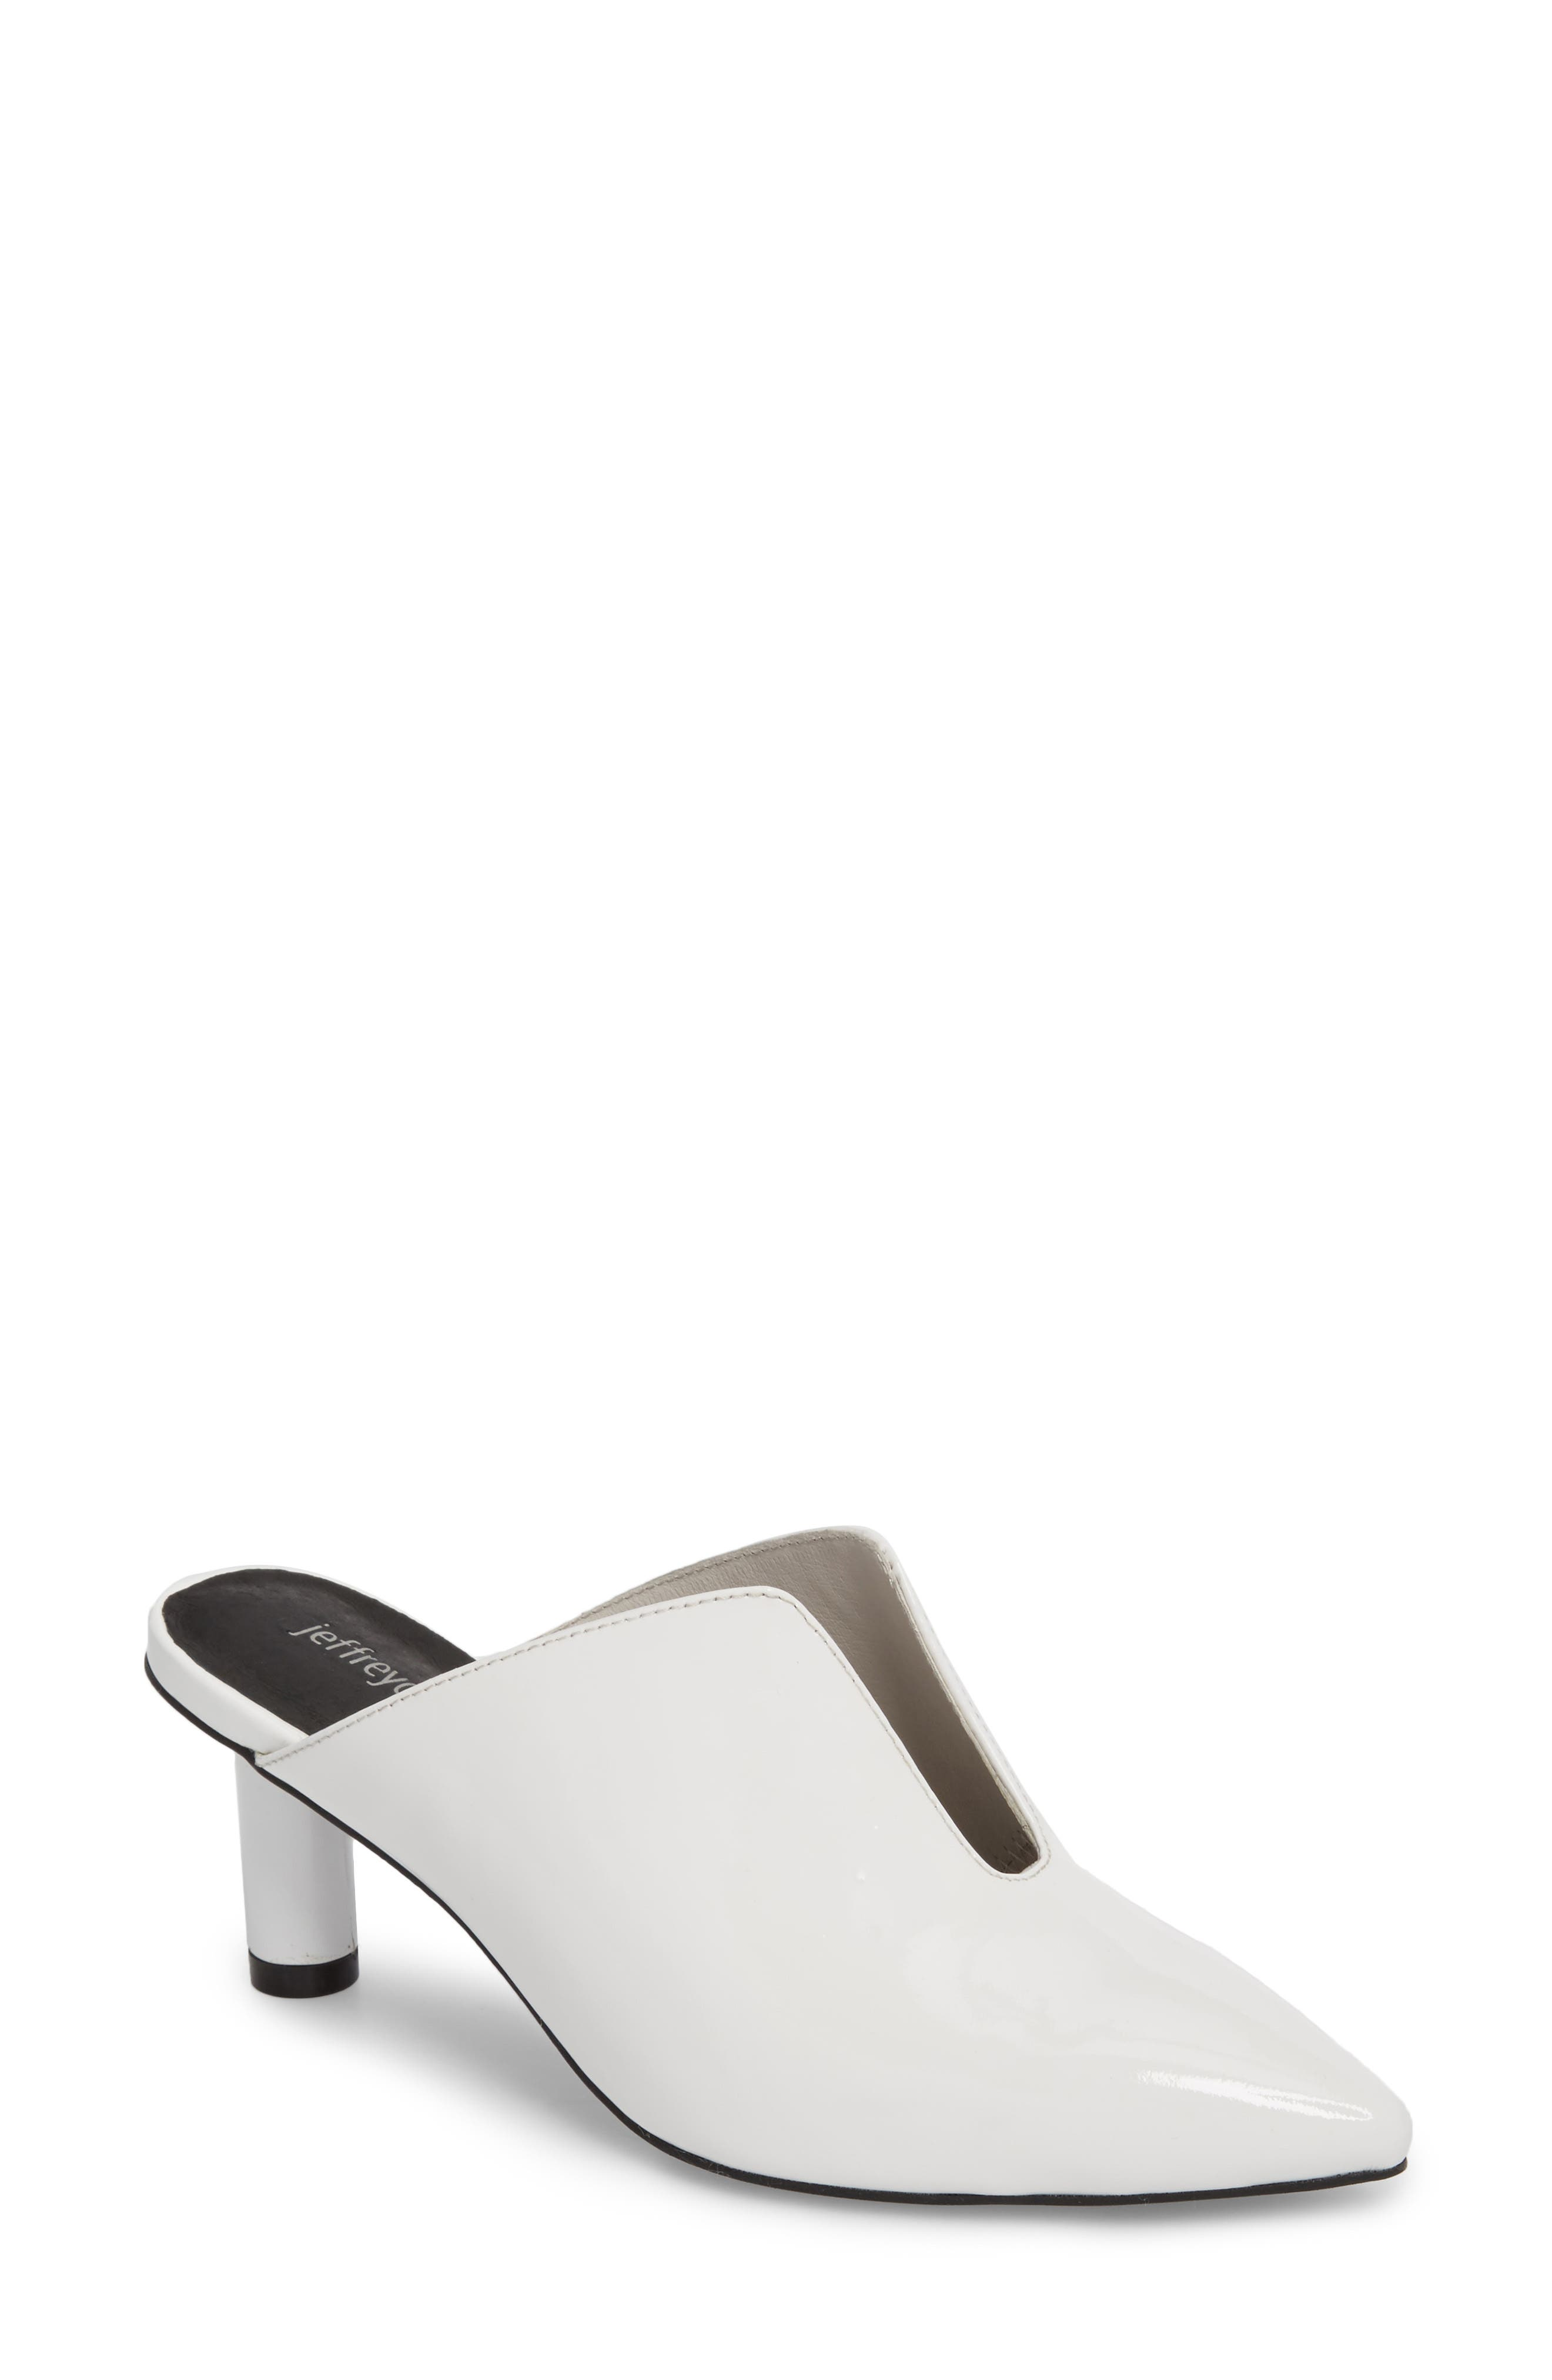 Saltaire Pointy Toe Mule,                         Main,                         color, White Patent Leather